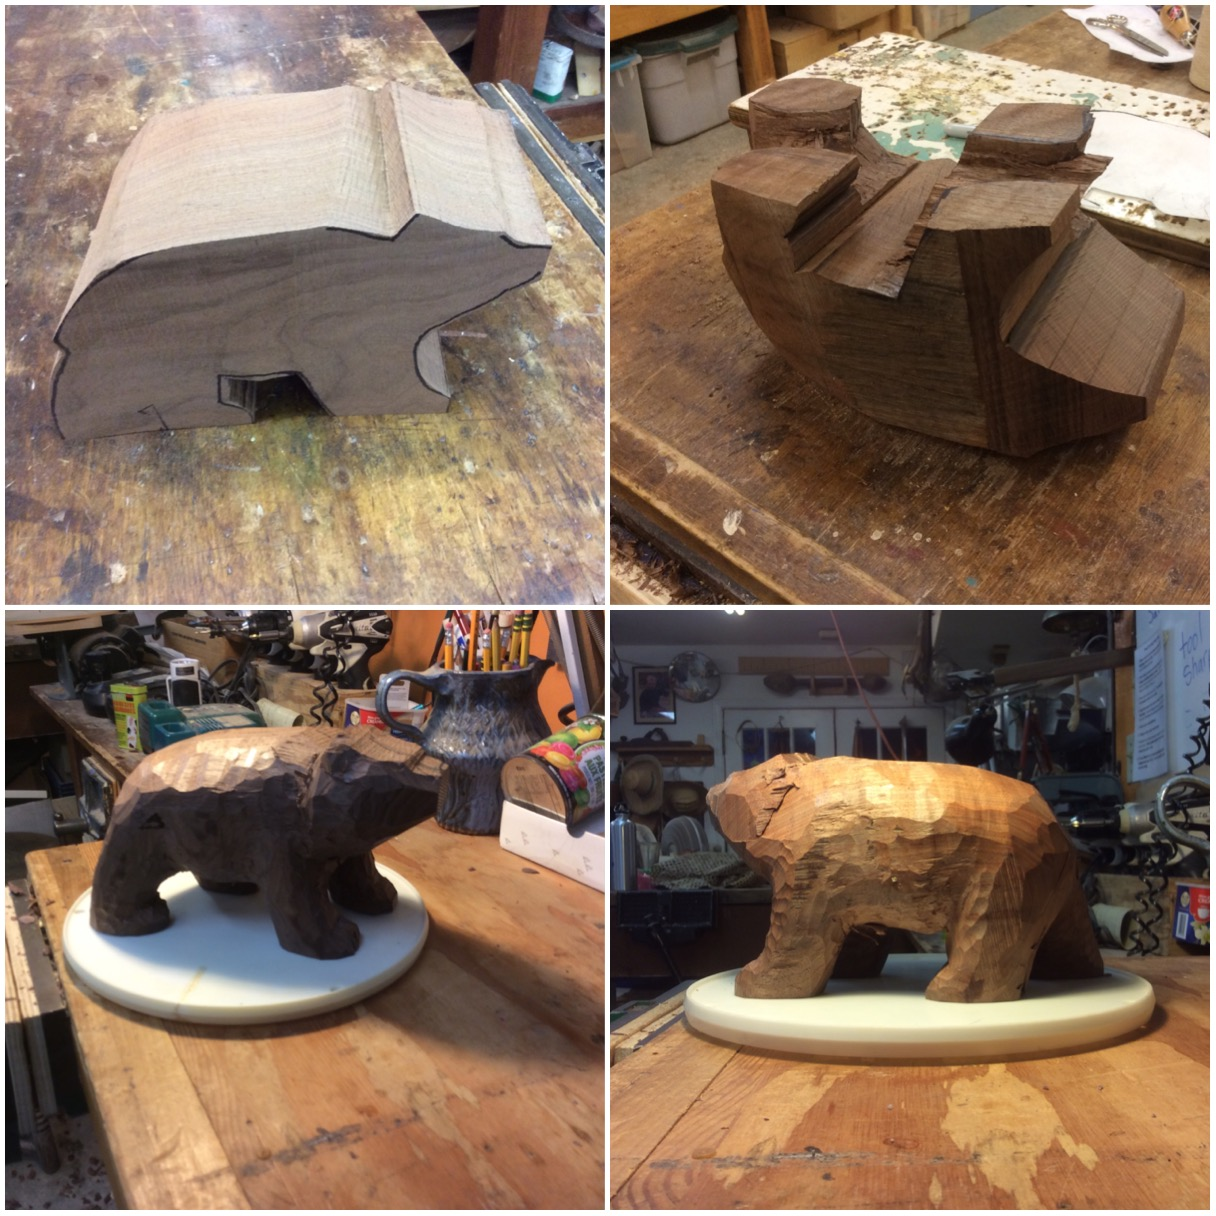 Had a commission piece for a carved bear.  Here are some process pics of the Claro Walnut Bear